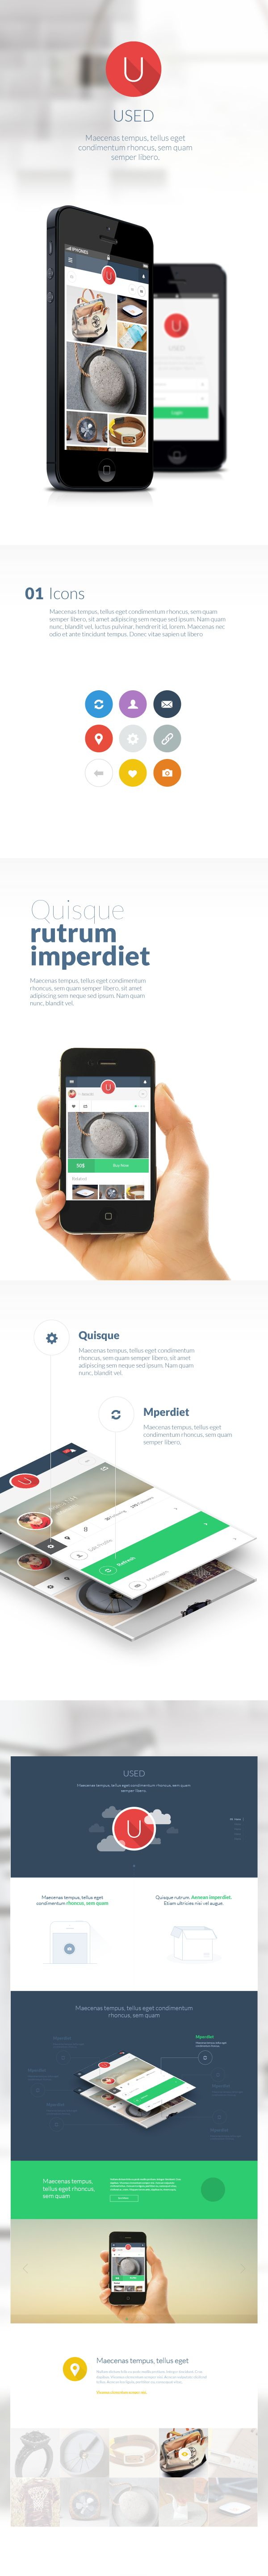 Used App by anas ibdah, via Behance